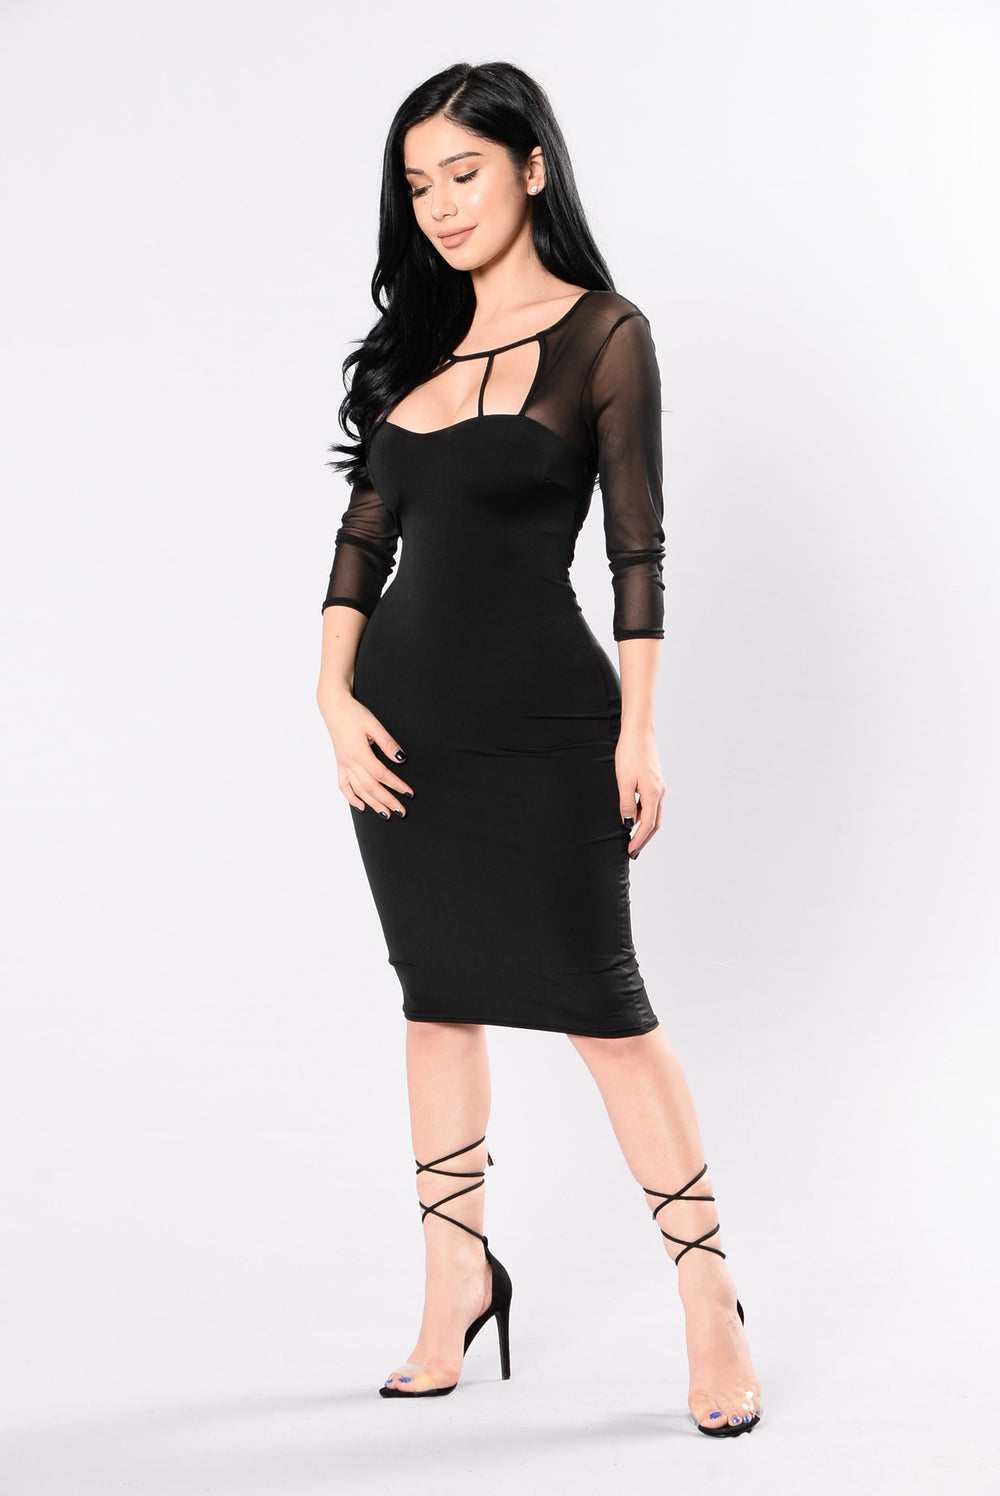 Bad Intentions Dress - Black